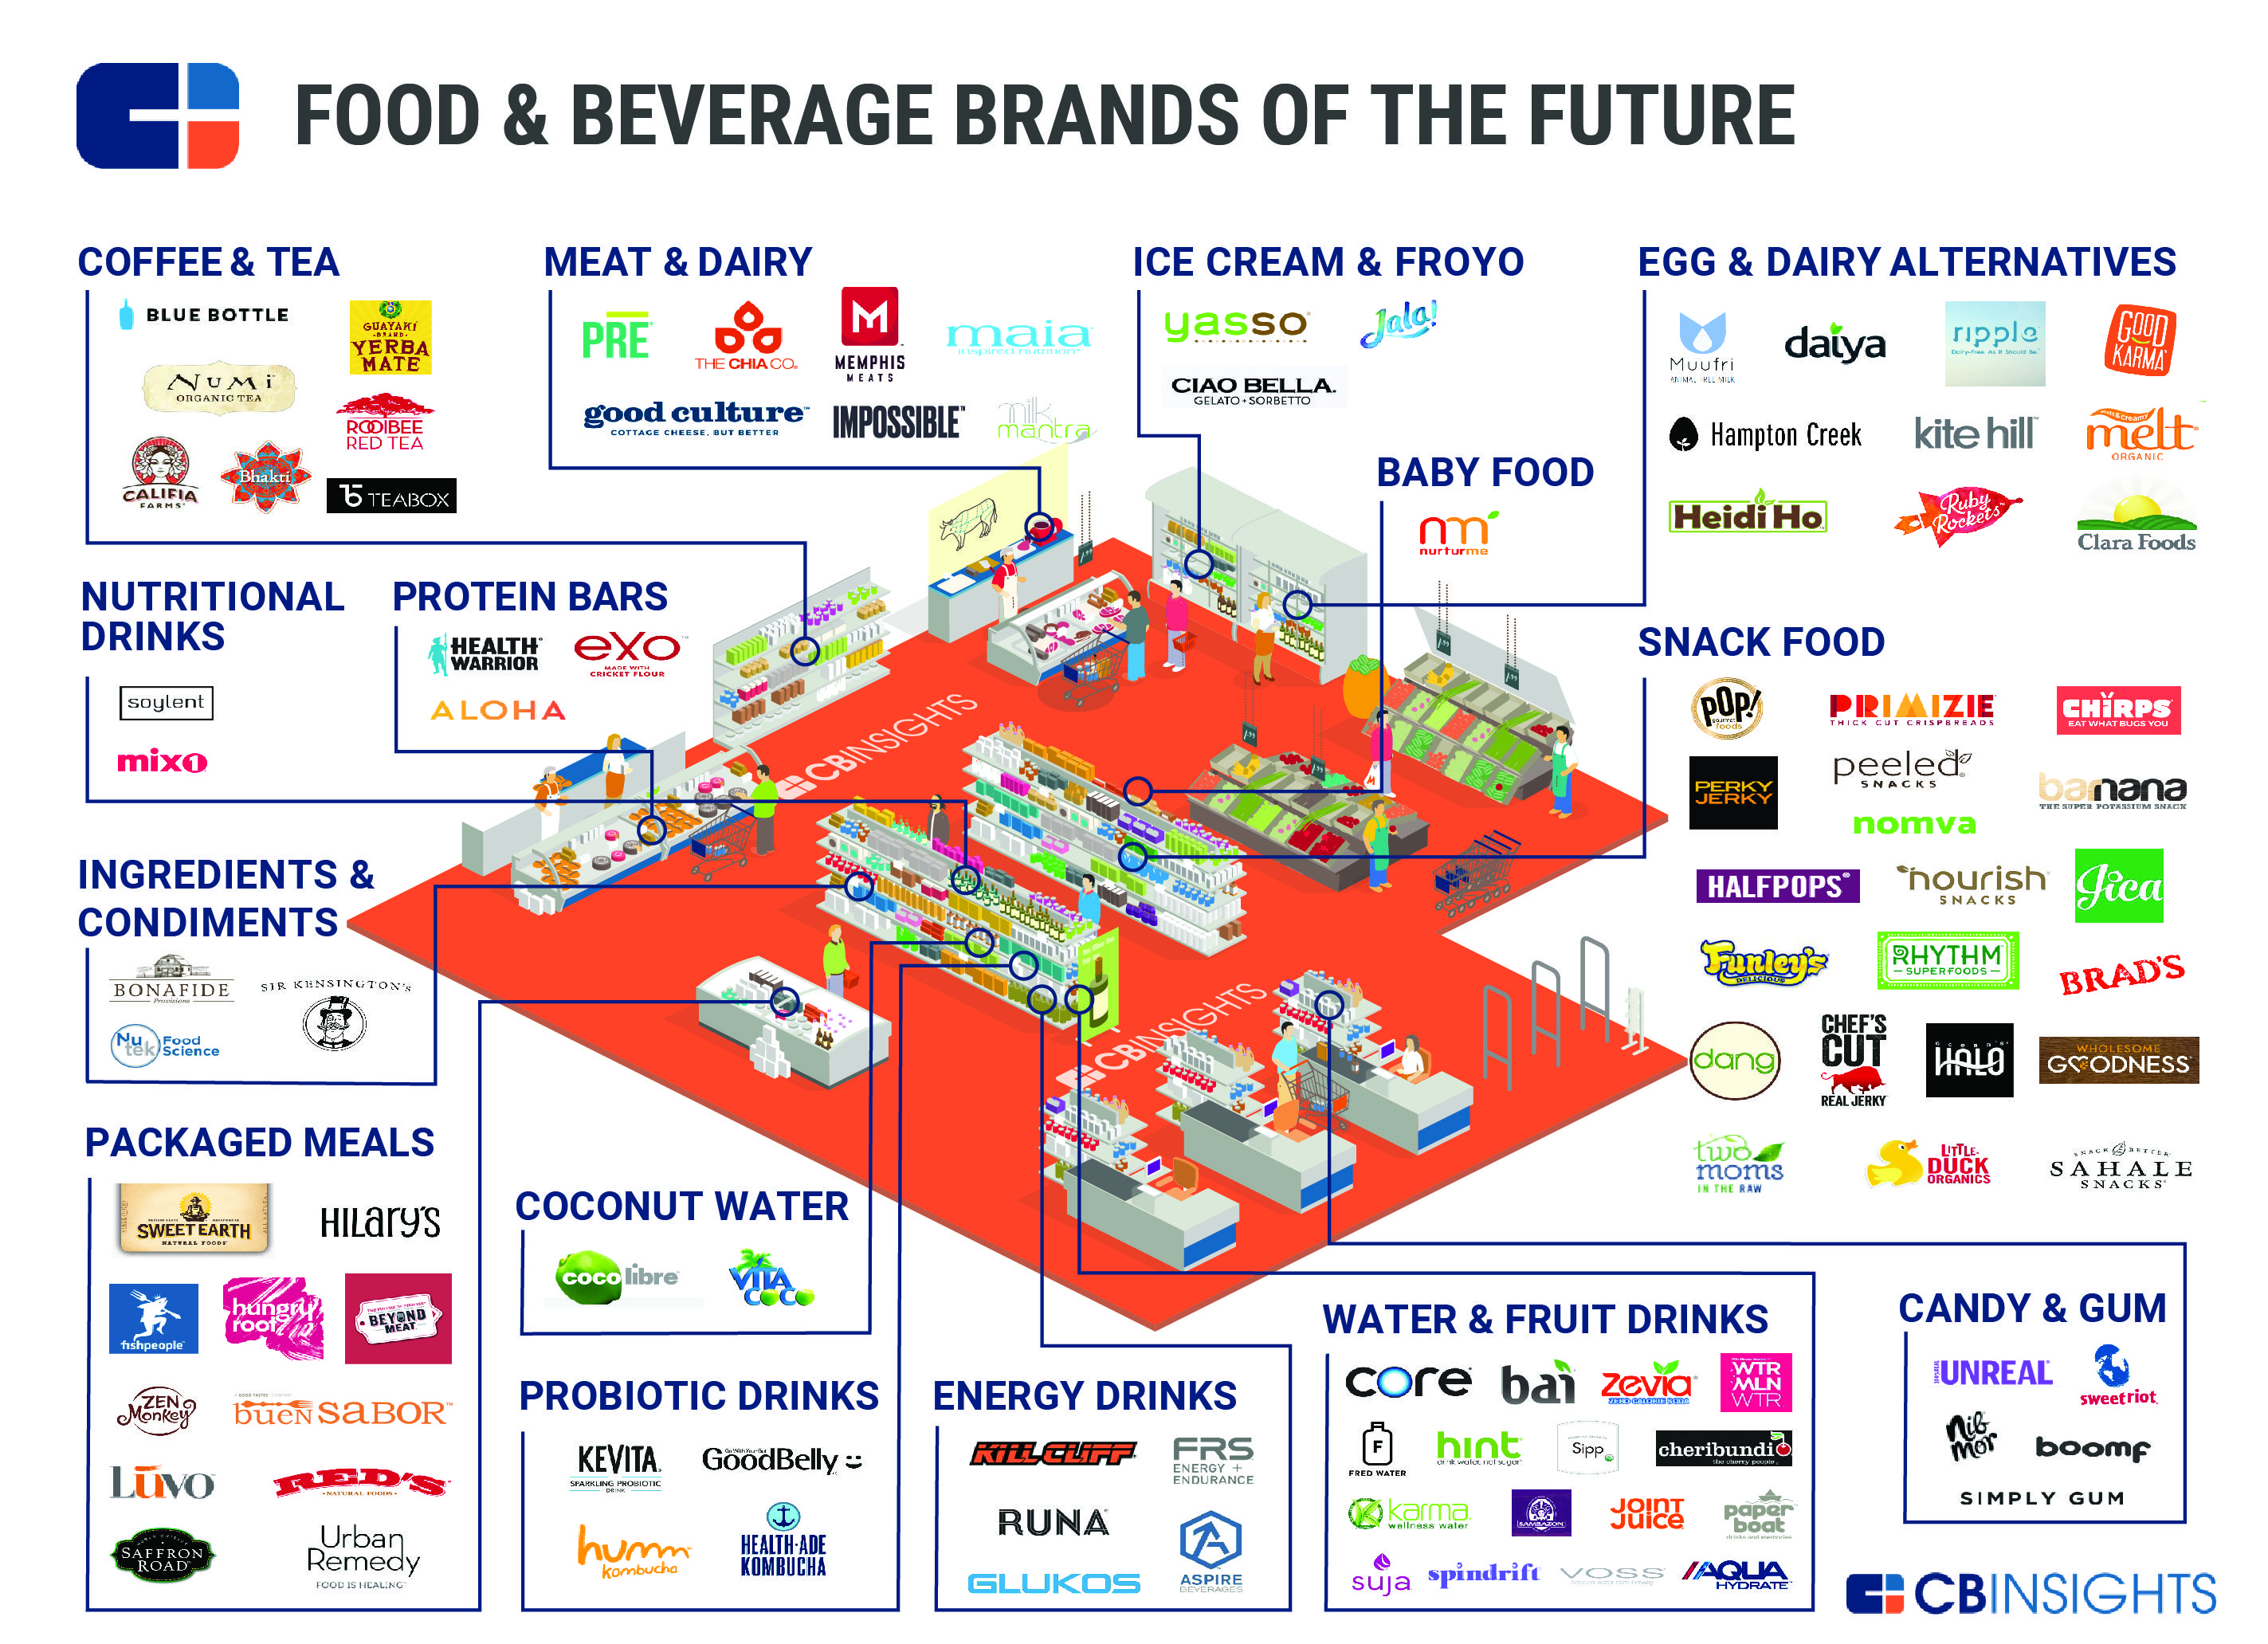 These private food and beverage companies have raised